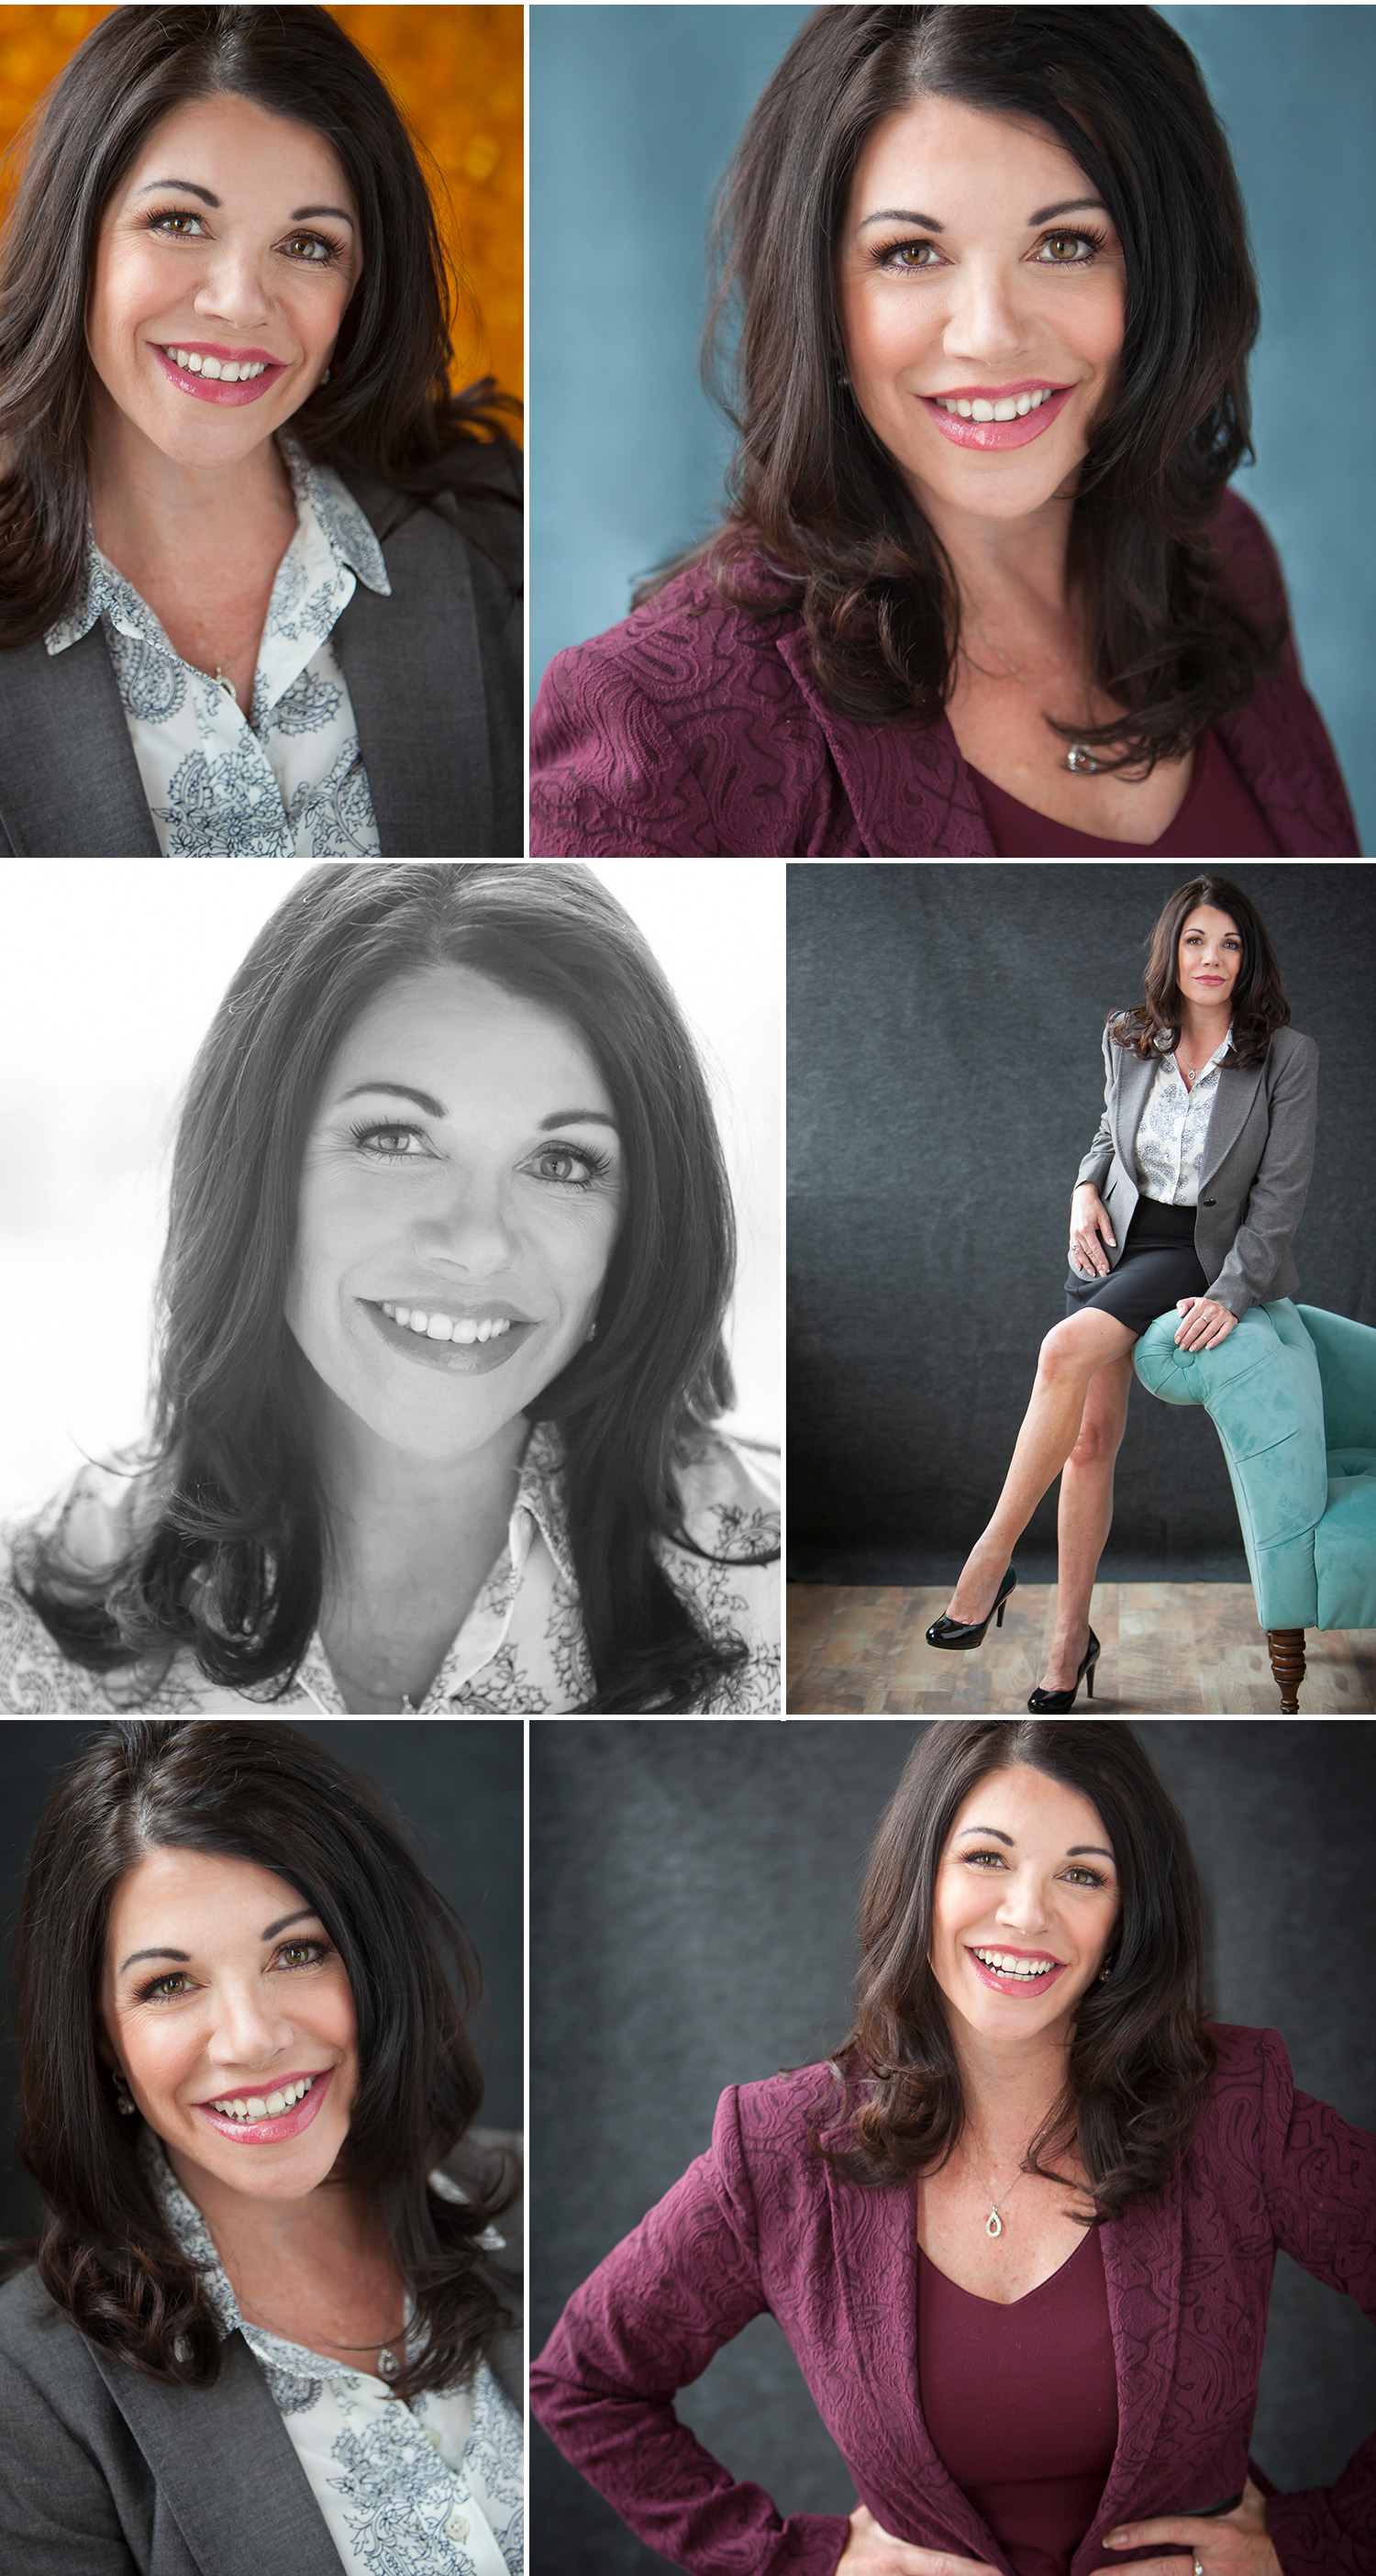 Luxurious Personal Branding Portrait Session of gorgeous brunette, with Denver photographer Jennifer Koskinen | Merritt Portrait Studio